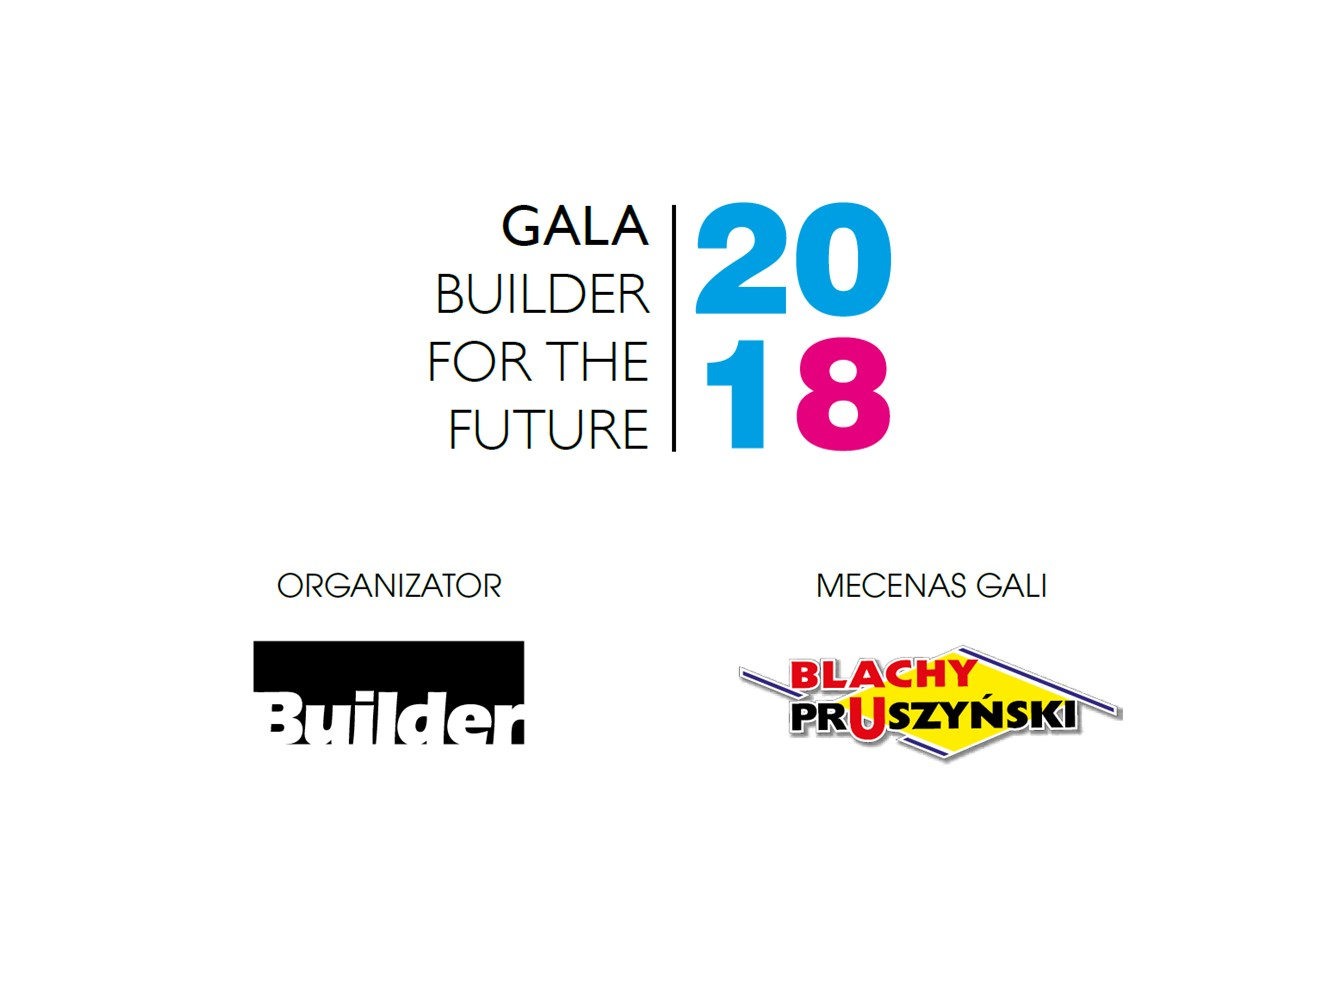 GALA BUILDER FOR THE FUTURE 2018